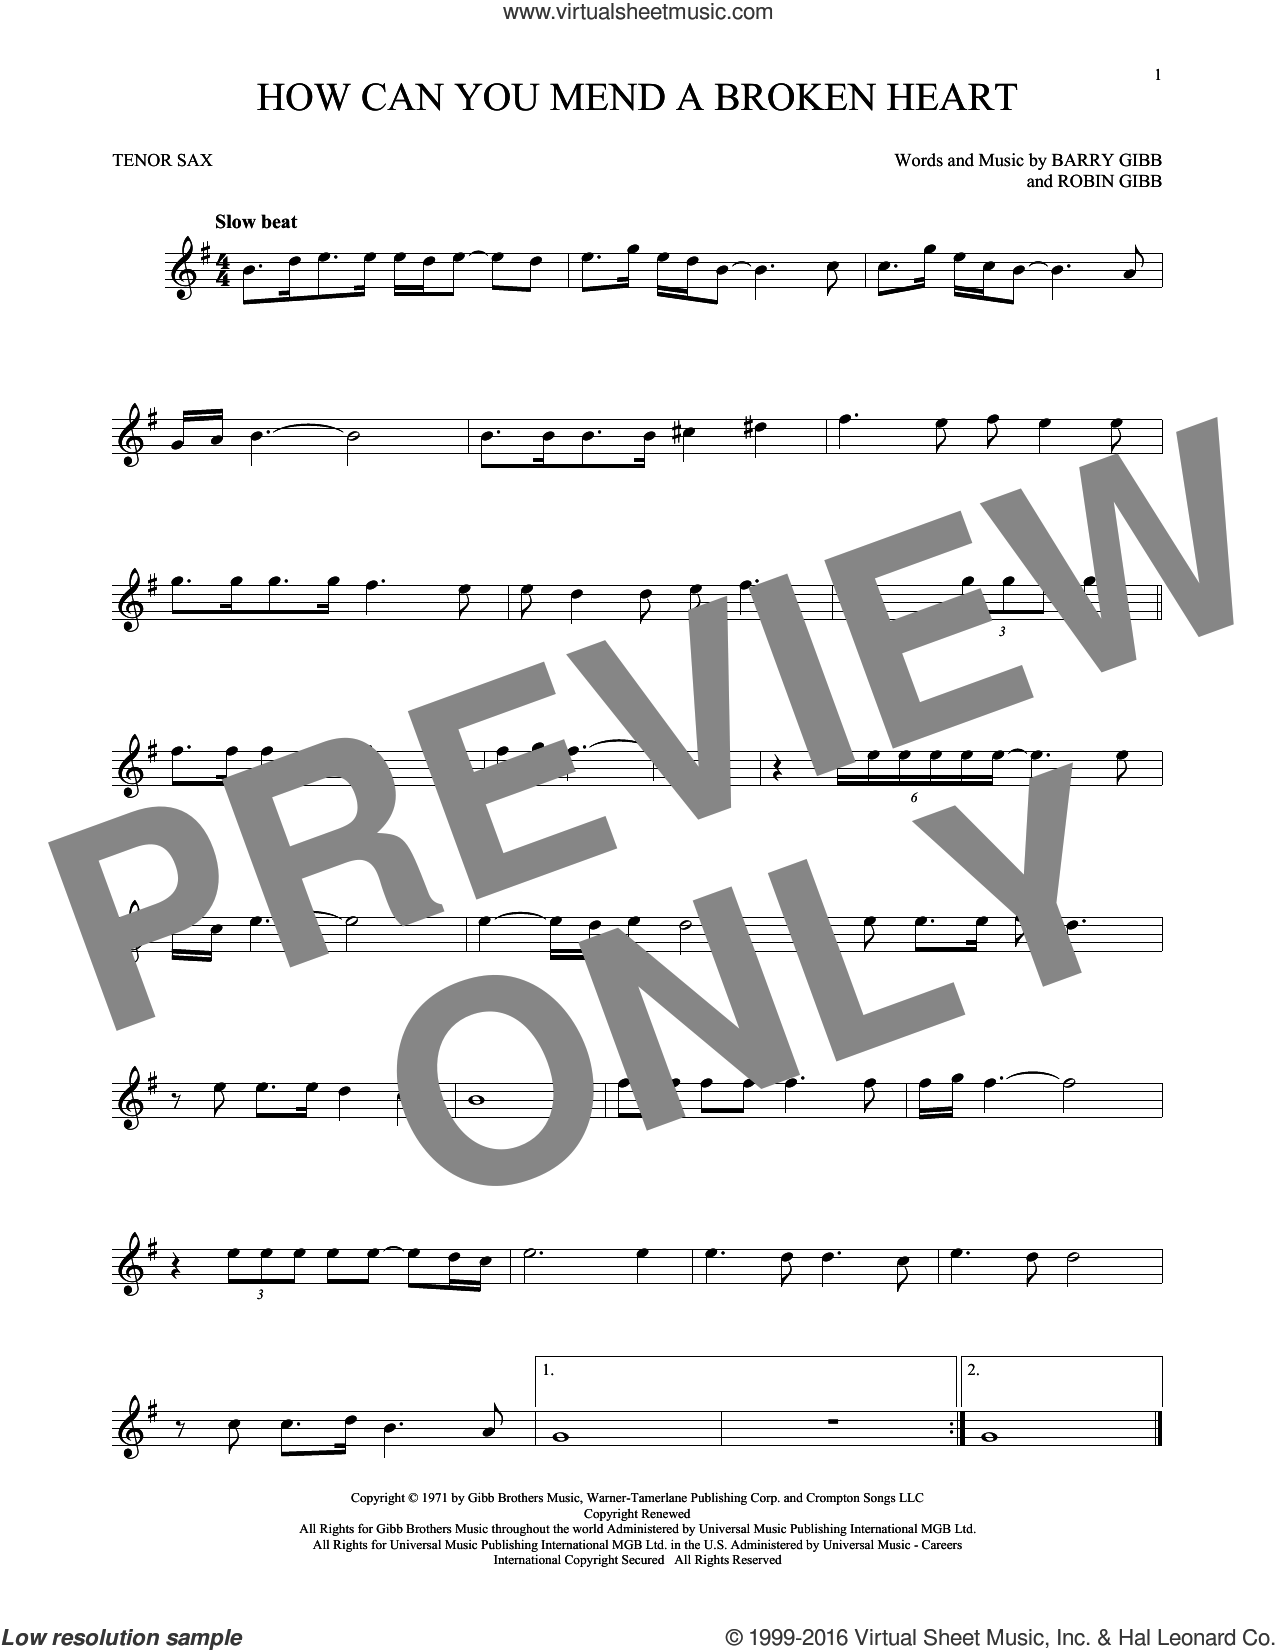 How Can You Mend A Broken Heart sheet music for tenor saxophone solo by Barry Gibb, Bee Gees and Robin Gibb, intermediate skill level